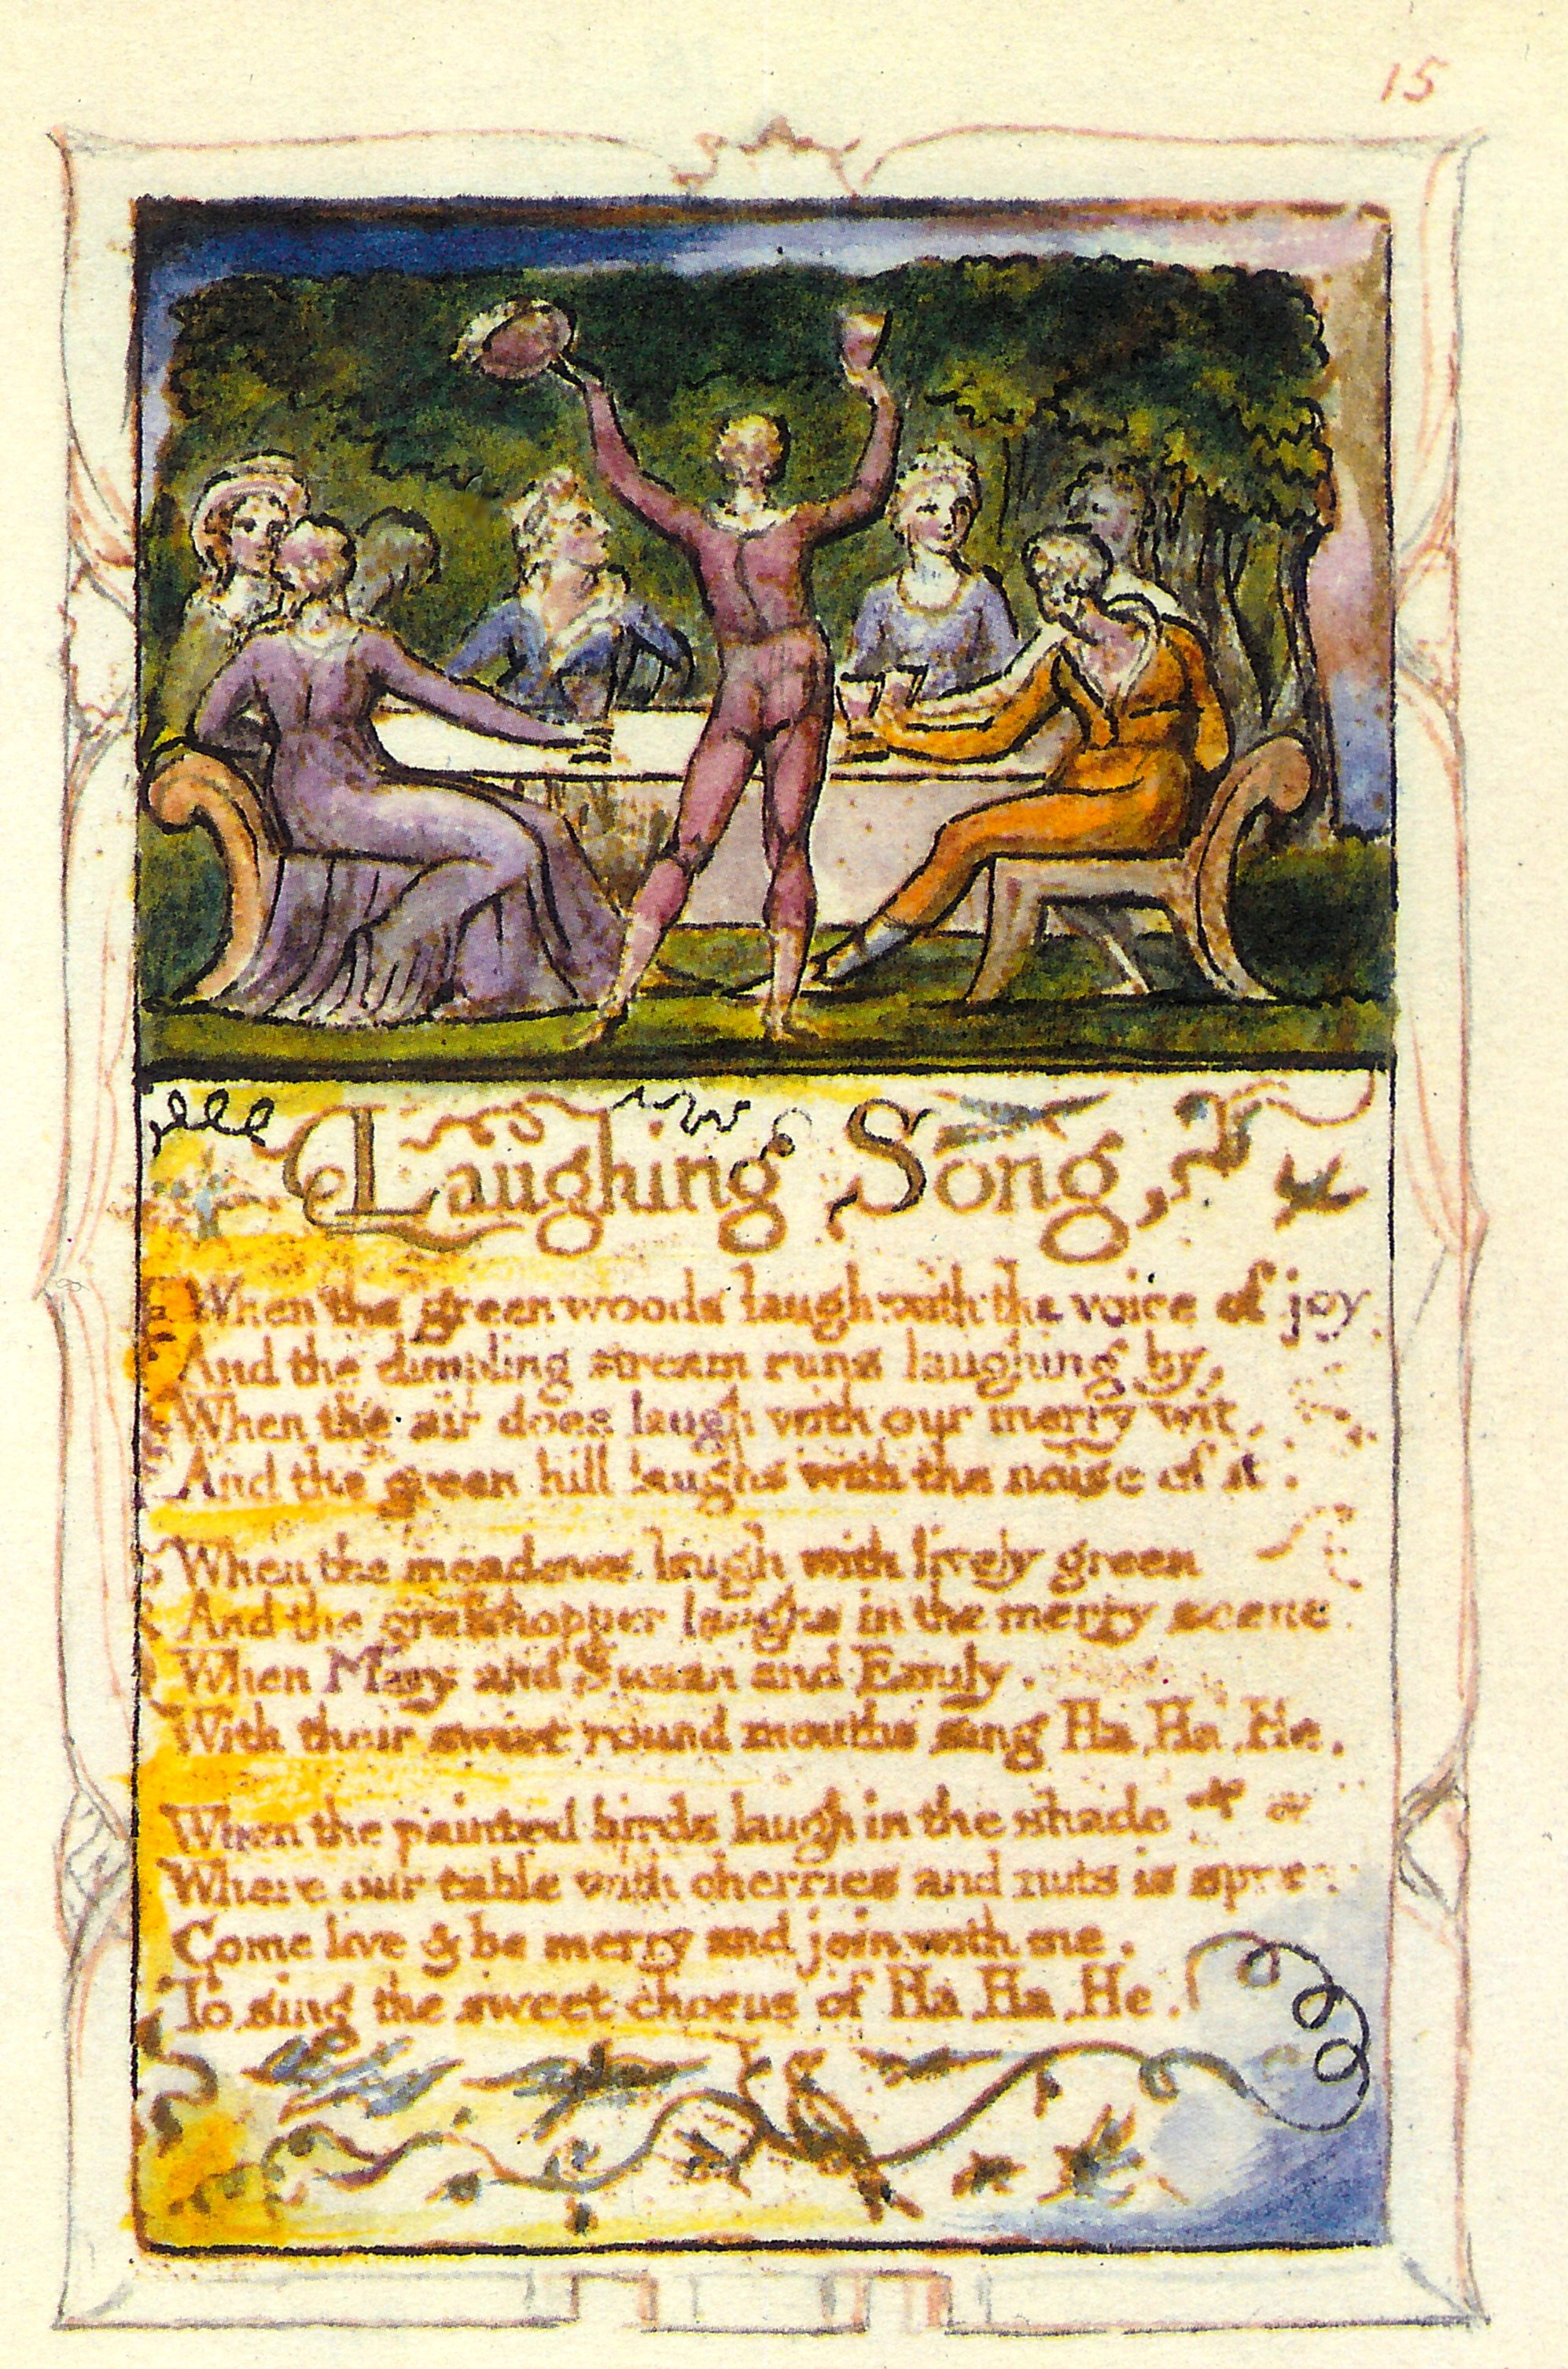 LaughingSong